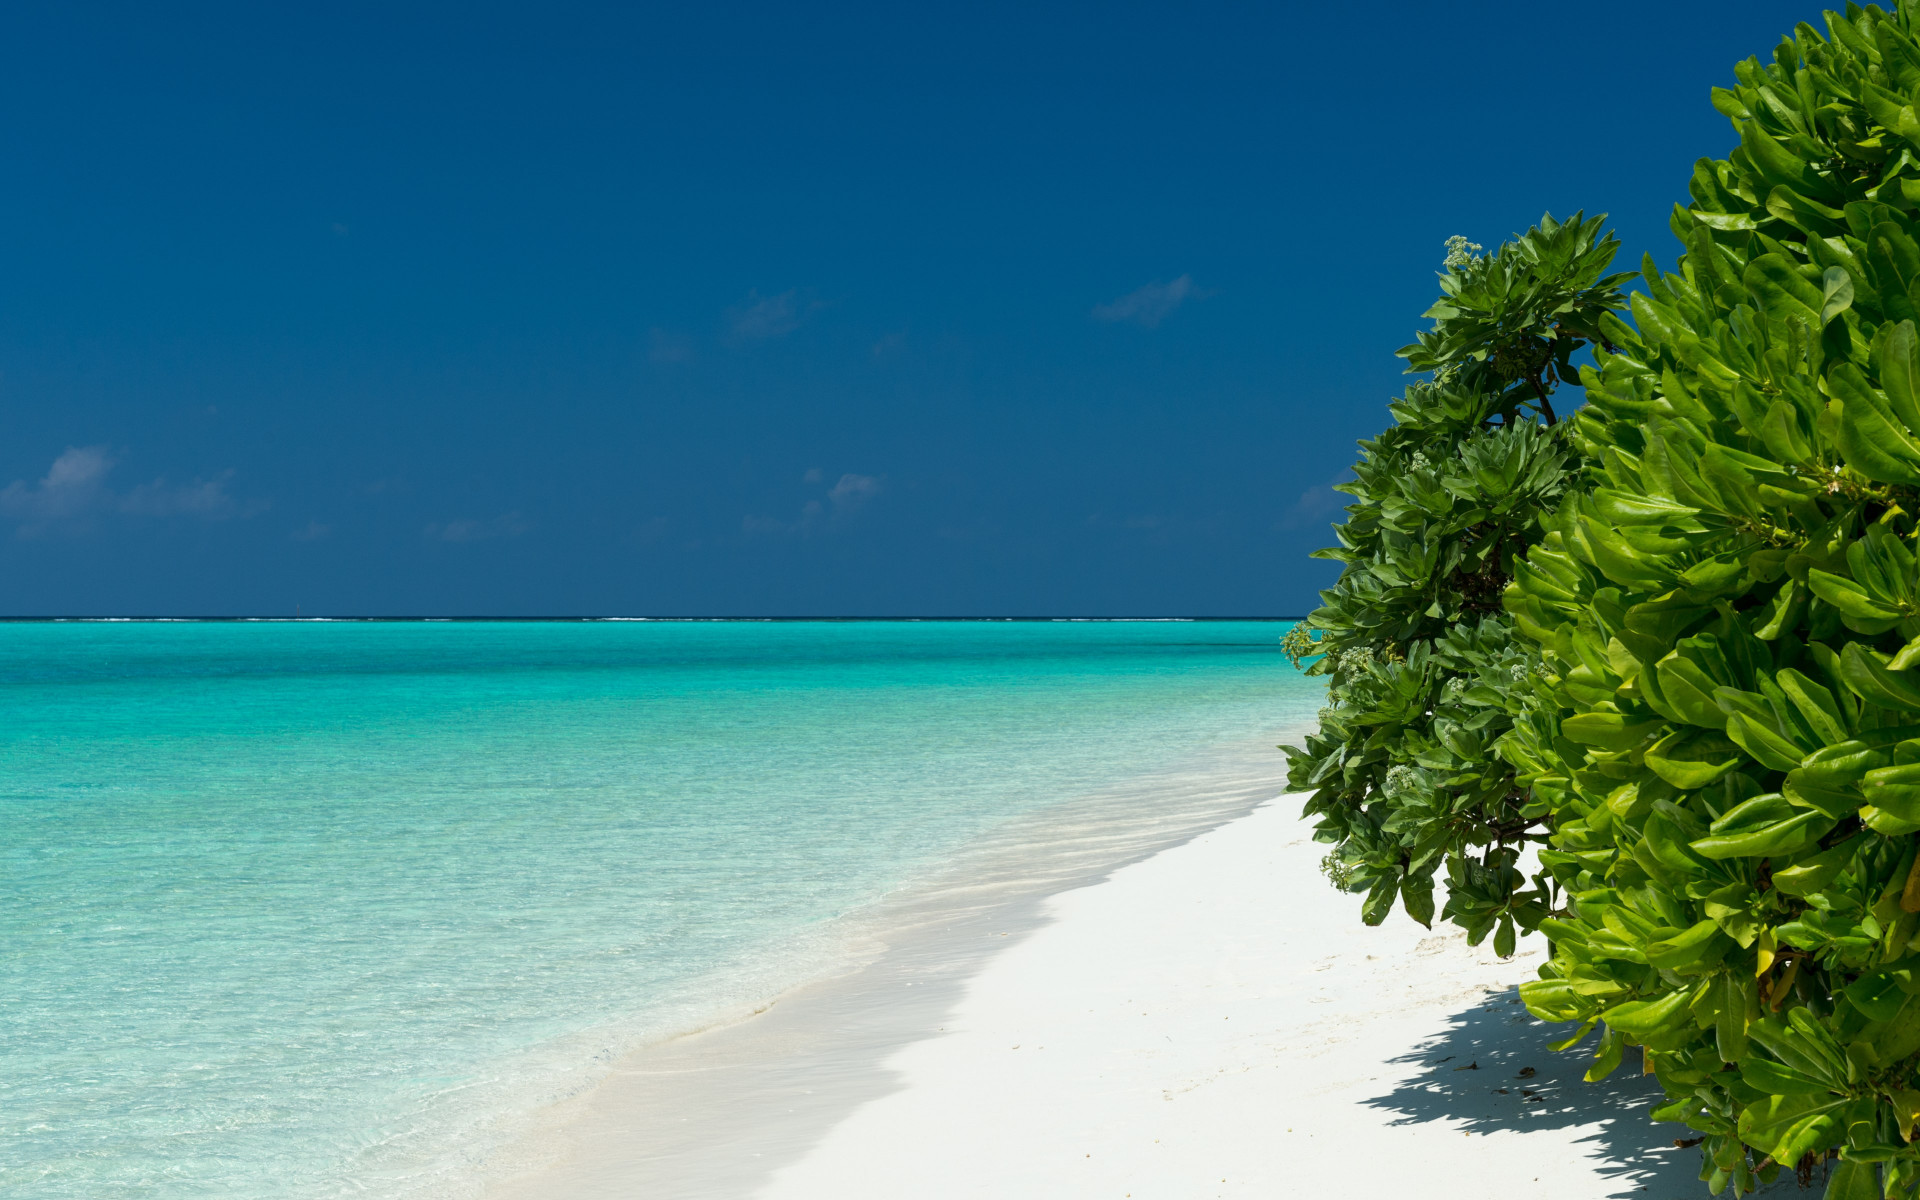 Turquoise waters of Maldives wallpaper 1920x1200